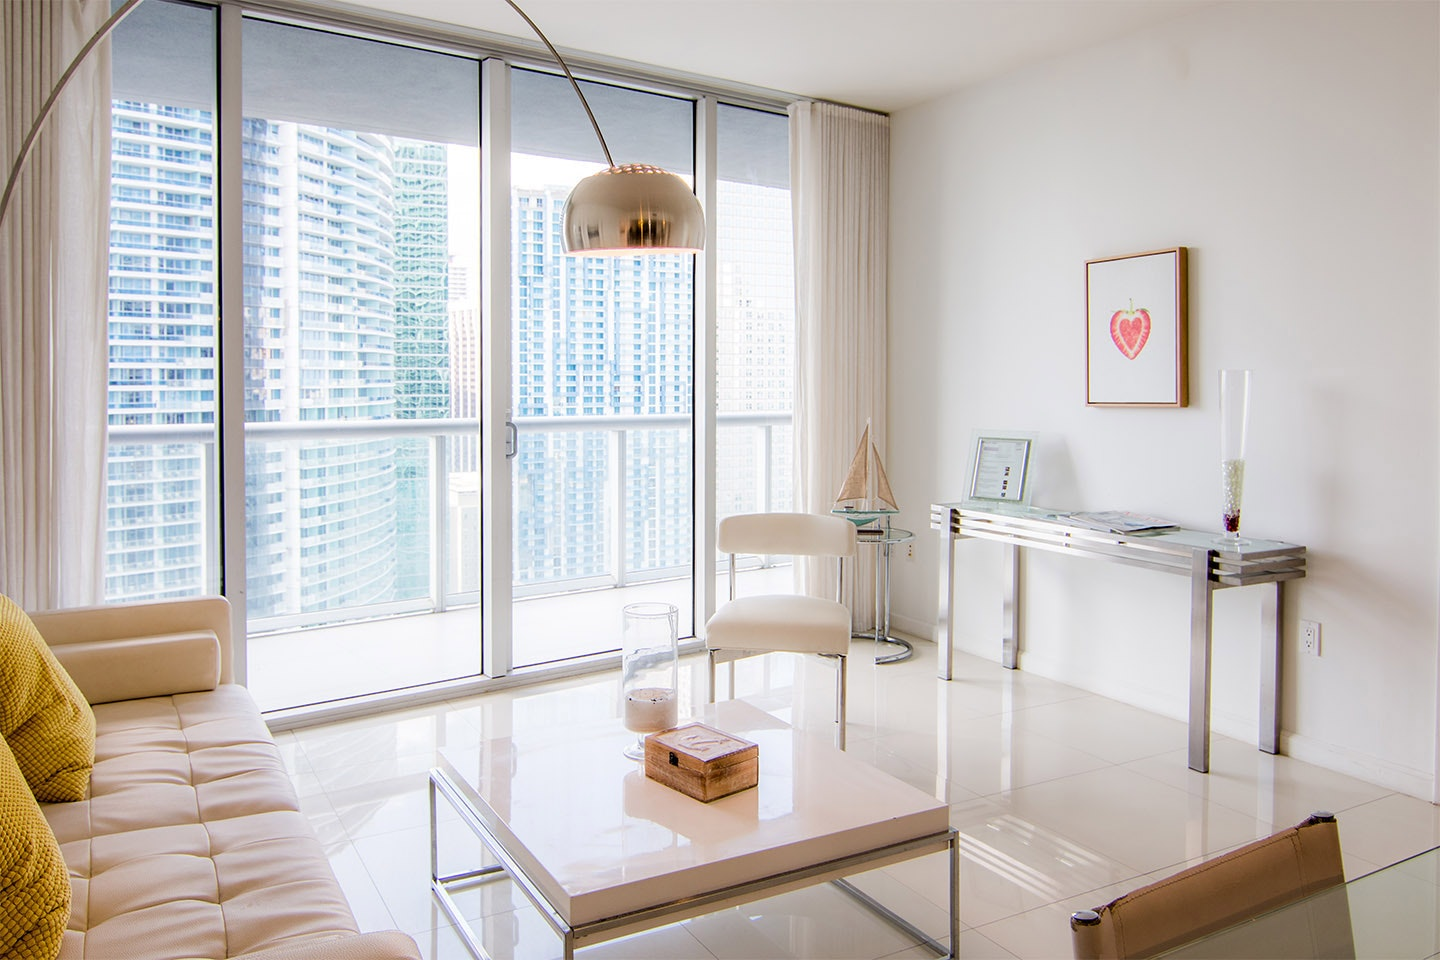 Bunk down in Brickell in a luxe condo perched on the 31st floor.